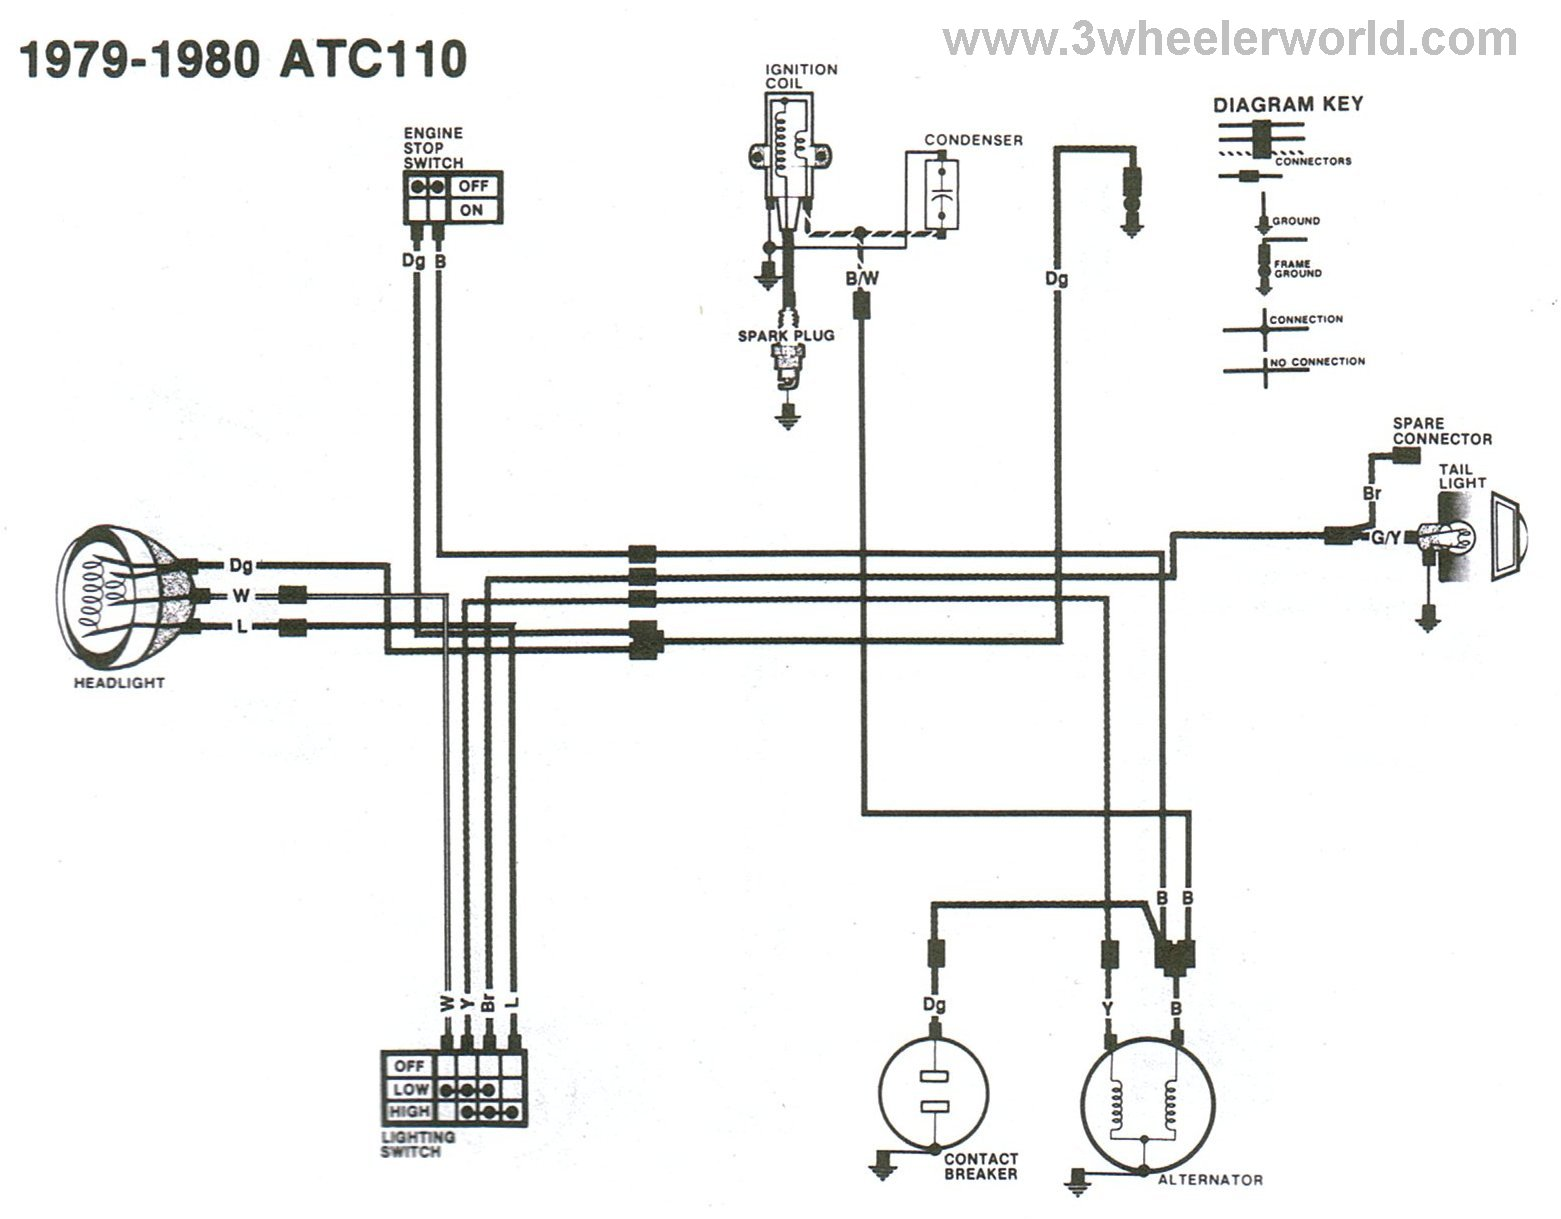 Honda 110 Wiring Diagram Wire Data Schema Source · 3 wheeler world tech  help honda wiring diagrams rh 3wheelerworld com Honda ATV Wiring Diagram  Honda